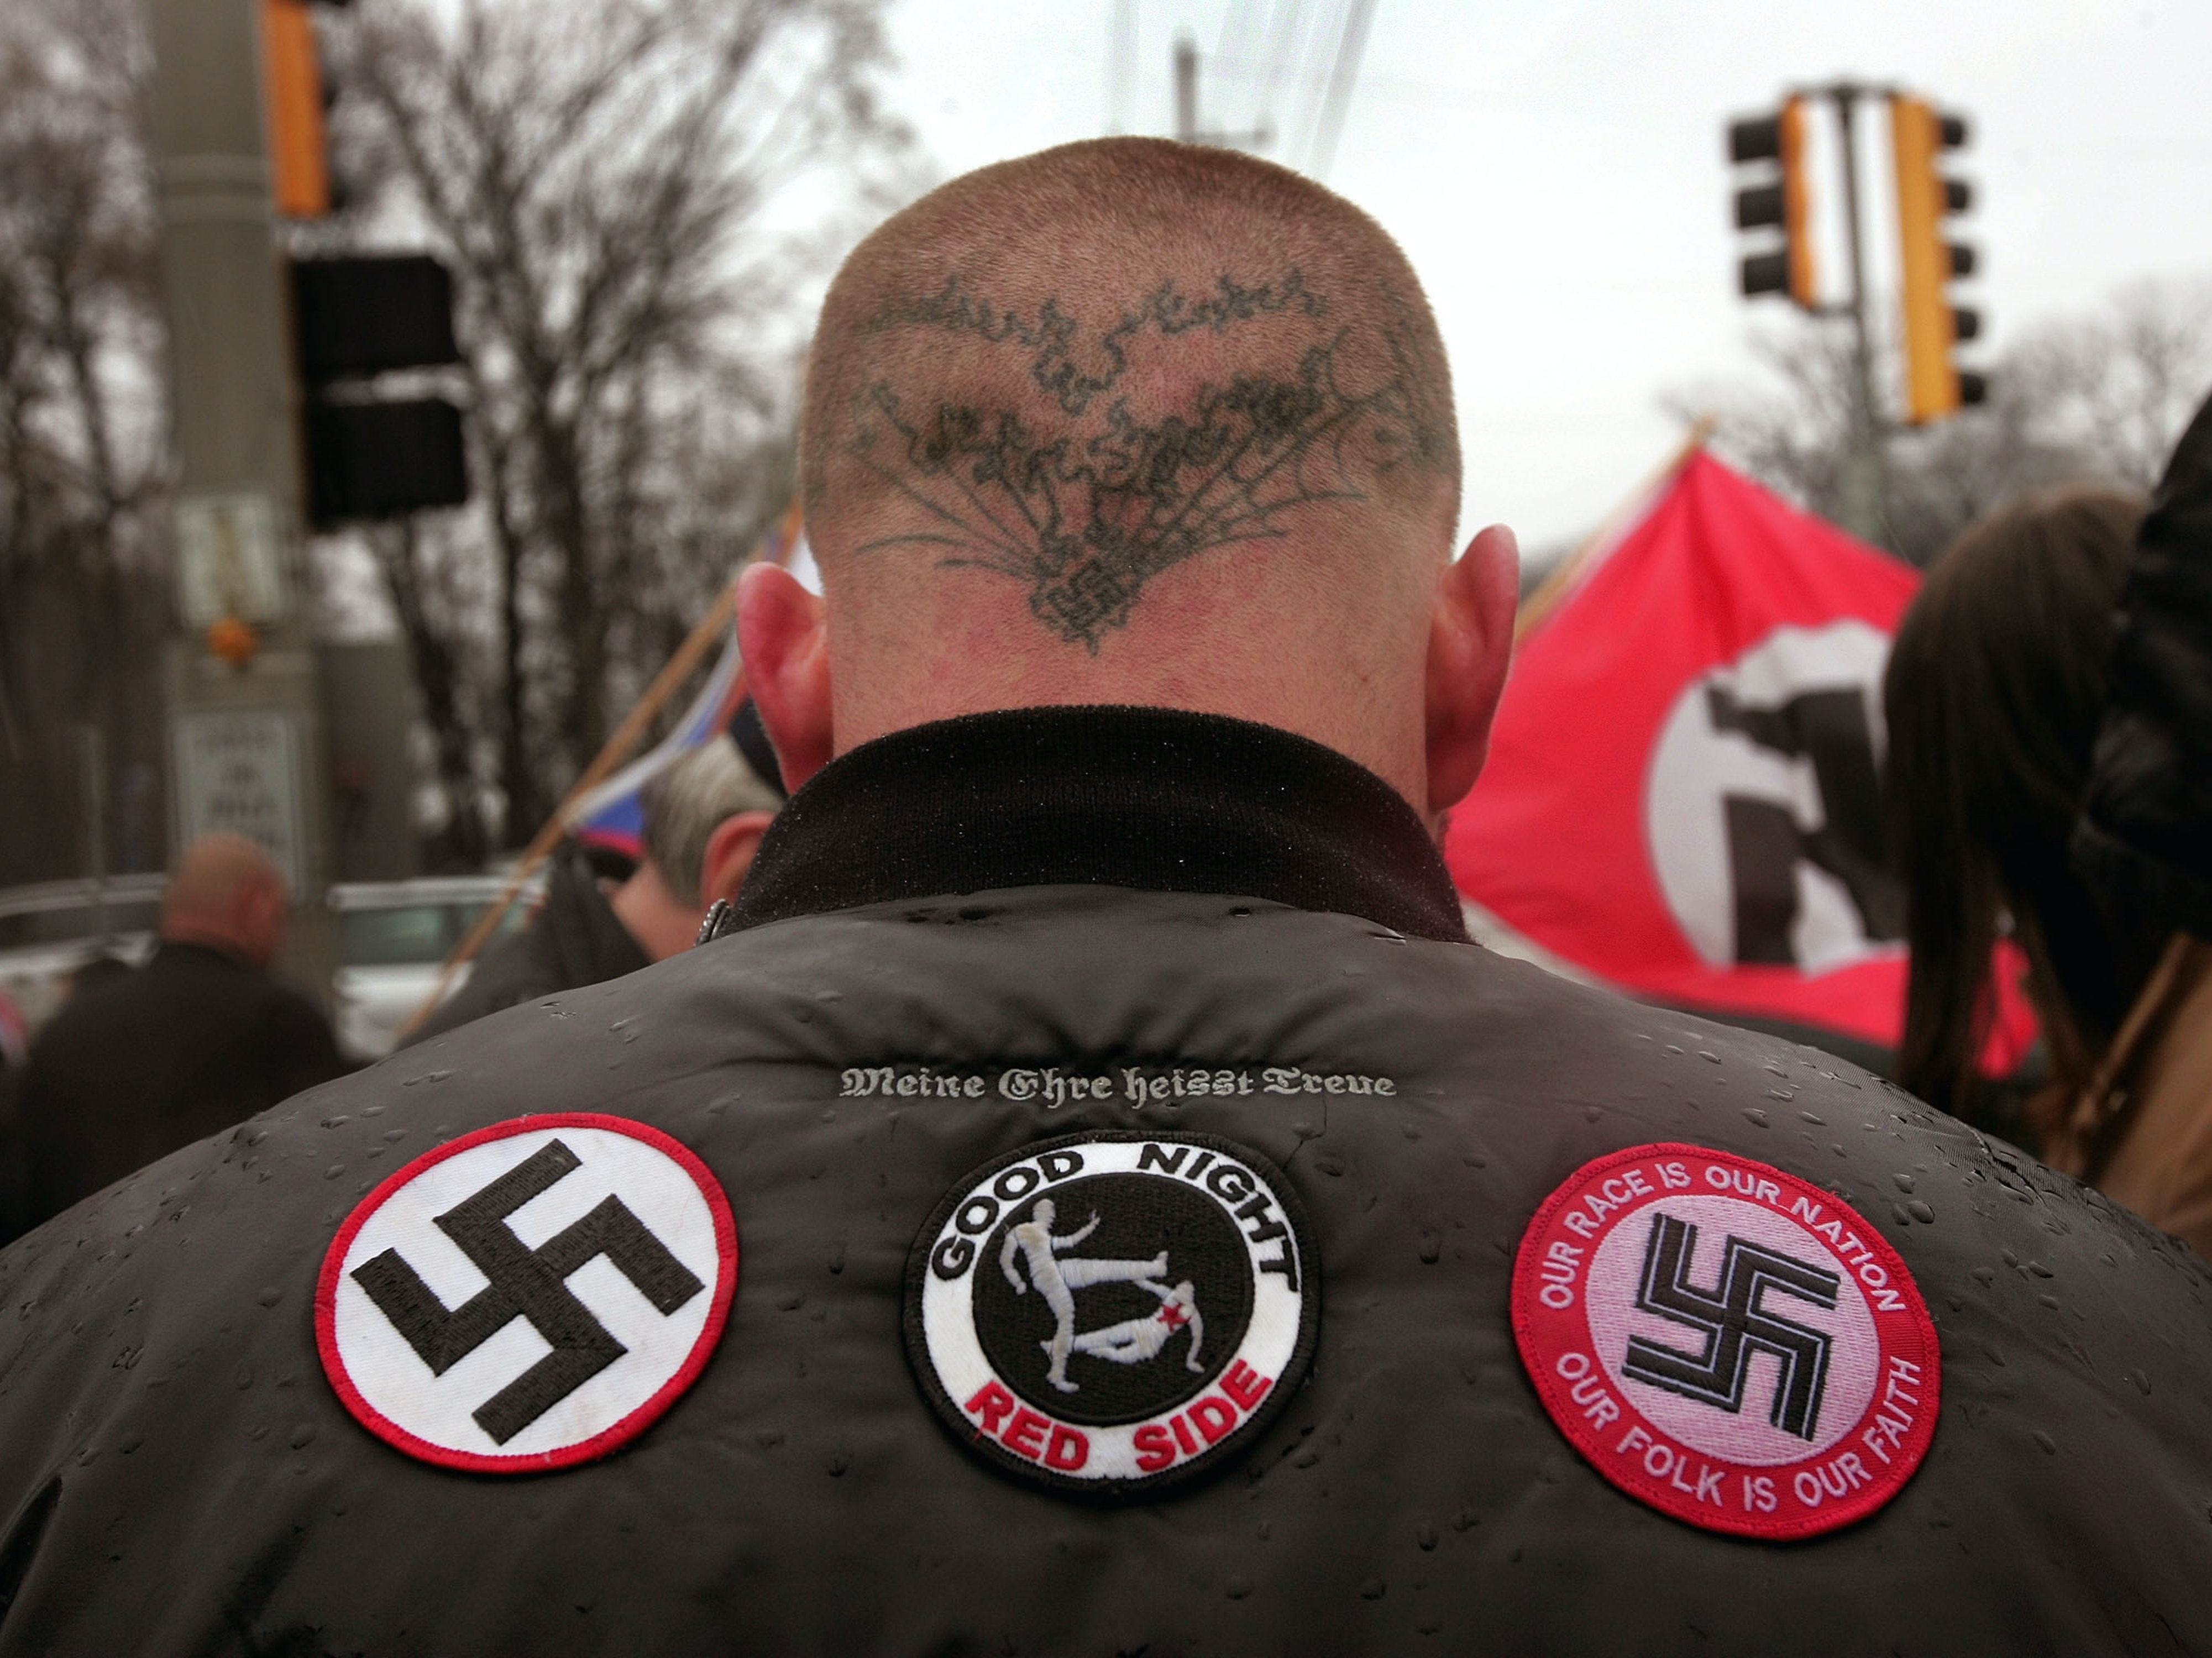 Neo-Nazi protestors organized by the National Socialist Movement demonstrate near where the grand opening ceremonies were held for the Illinois Holocaust Museum & Education Center April 19, 2009, in Skokie, Illinois. About 20 protestors greeted those who left the event with white power salutes and chants.